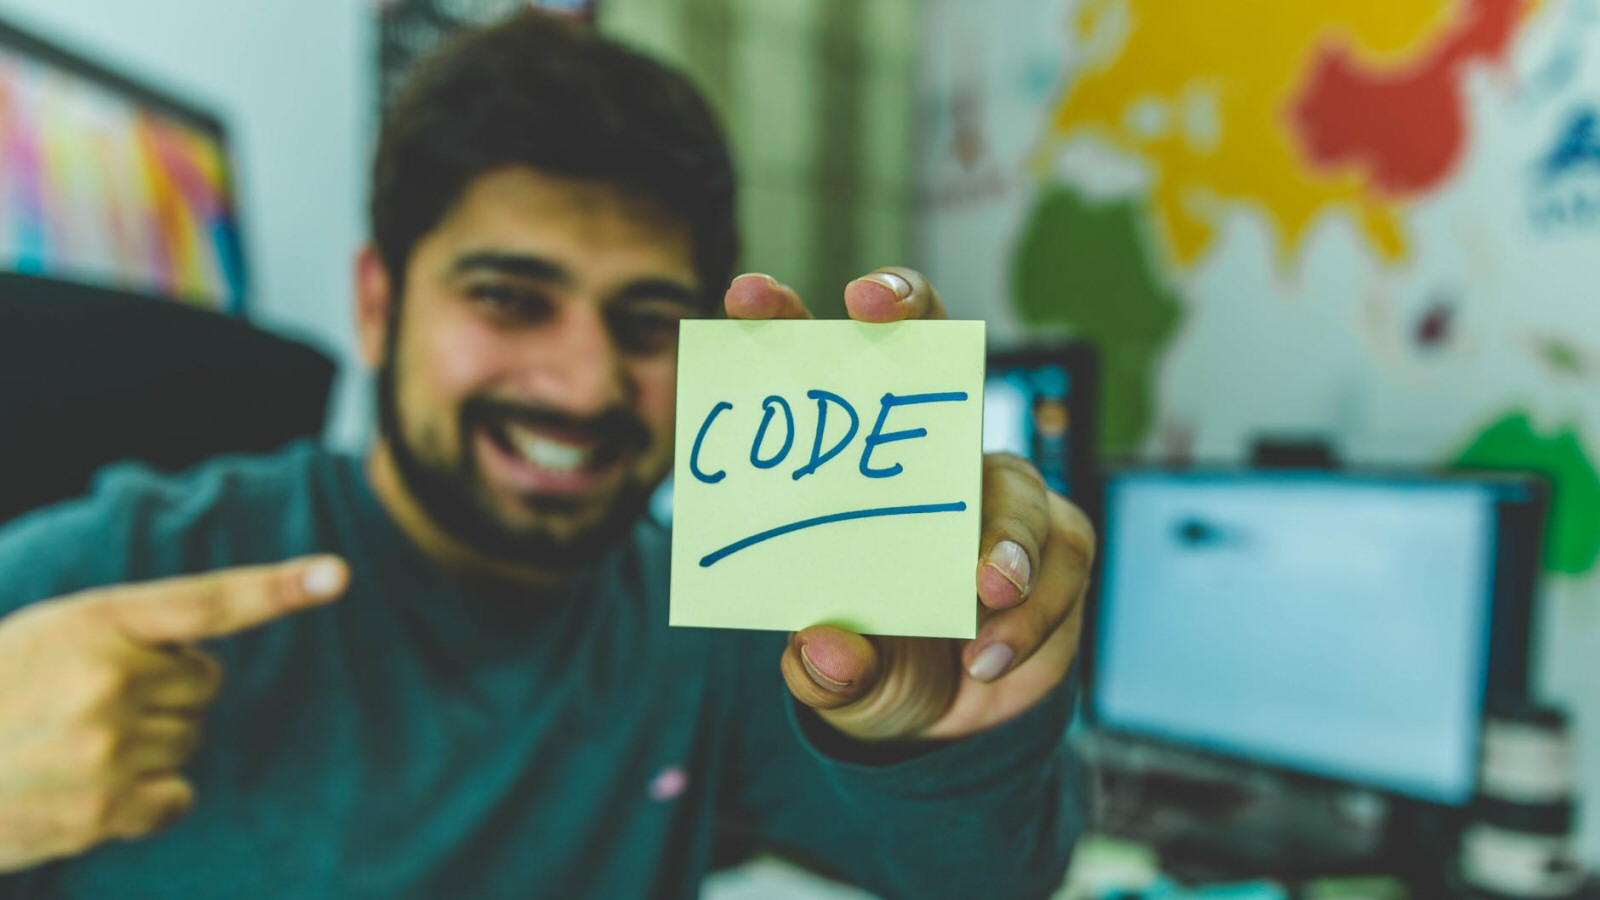 Wait, you can do this? Just write the word 'code' on a stickynote? Damn it. Turns out I've been doing things the hard way all my life.